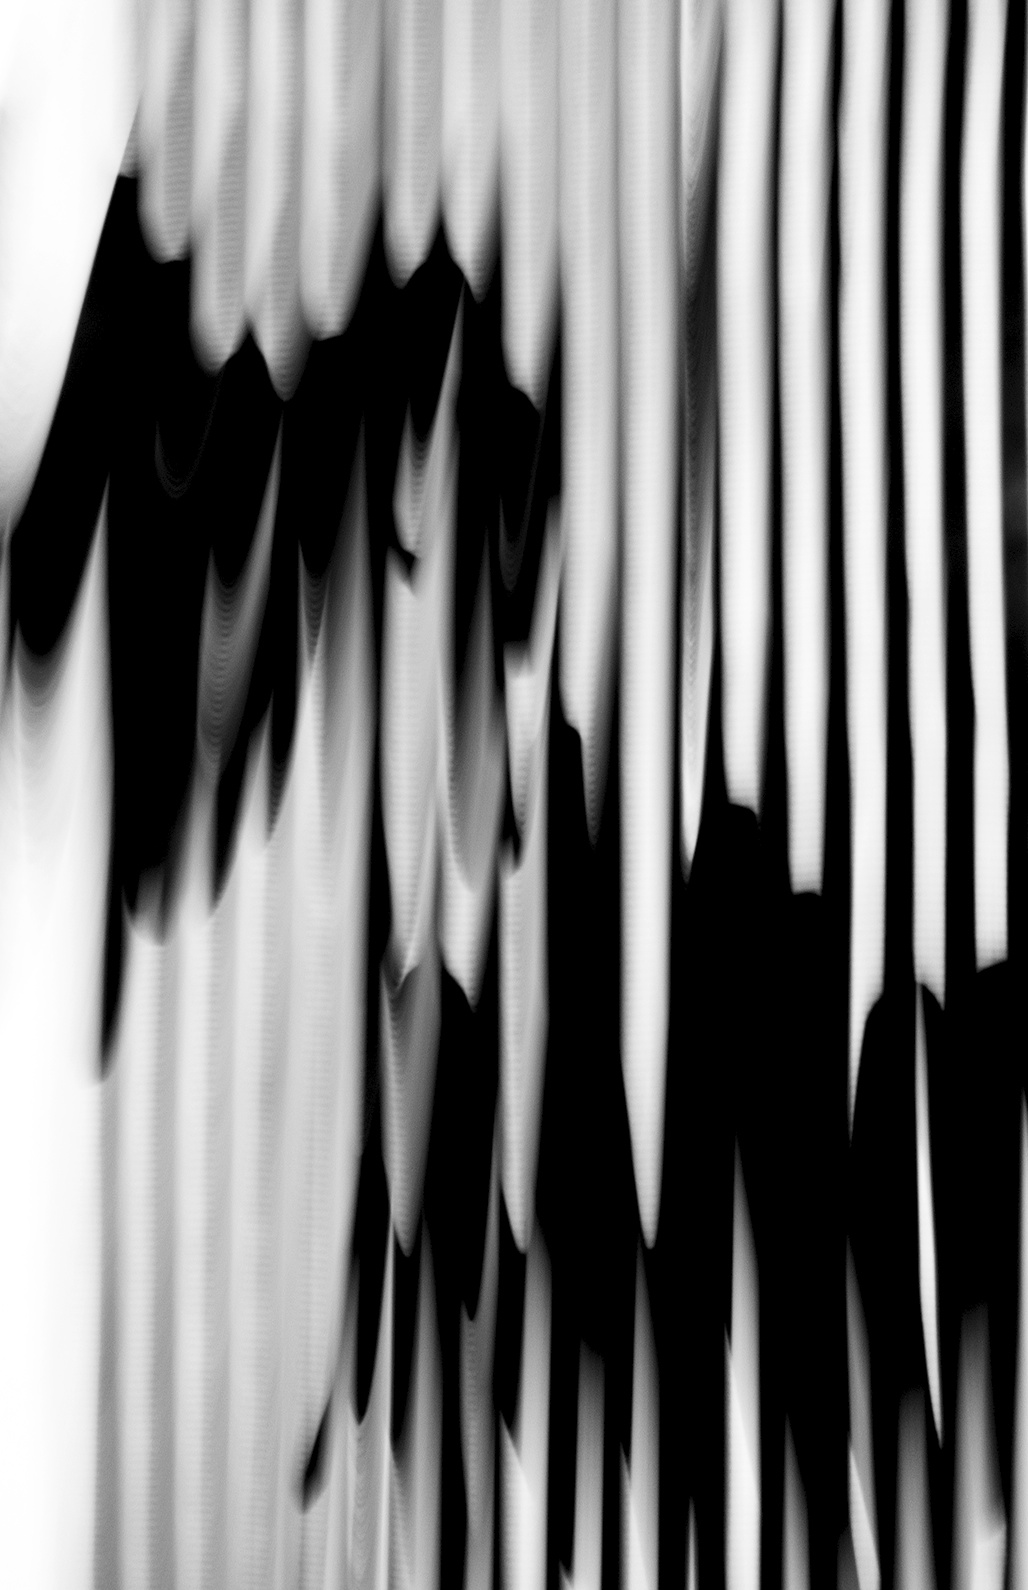 Untitled, M. Doodles 2, 2014, Black and White Abstract Photography, Shirine Gill